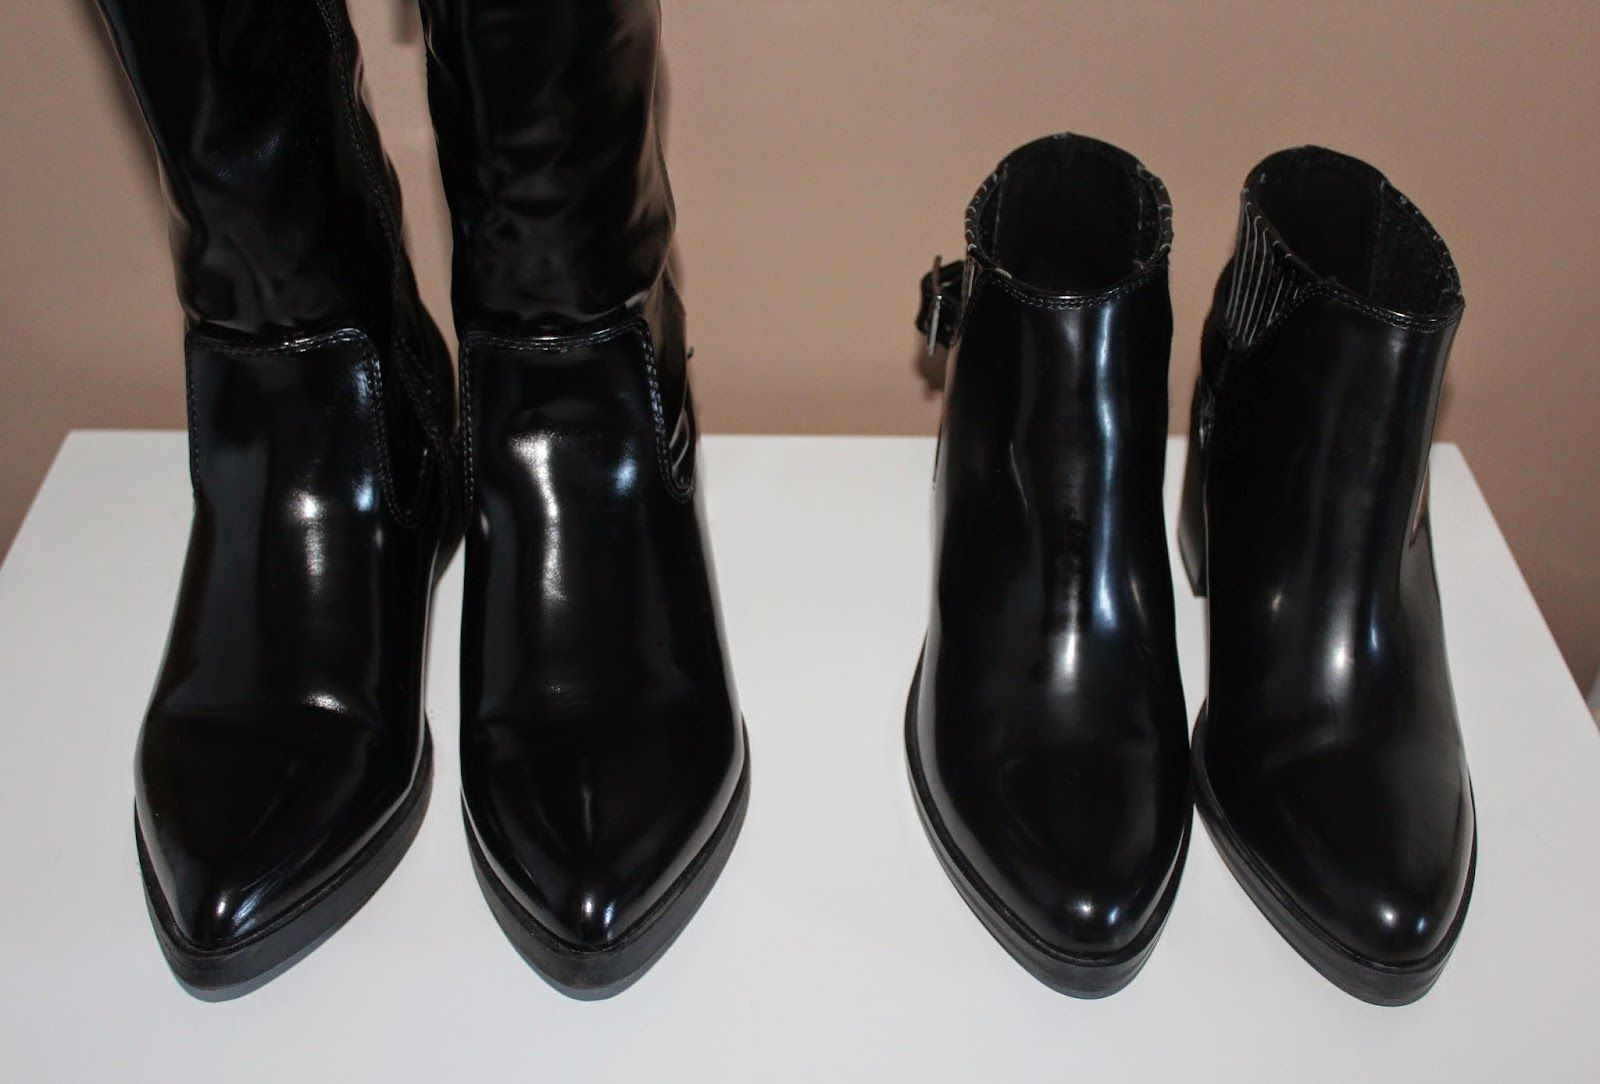 Rita Giacco: New in | Boots are made for walking